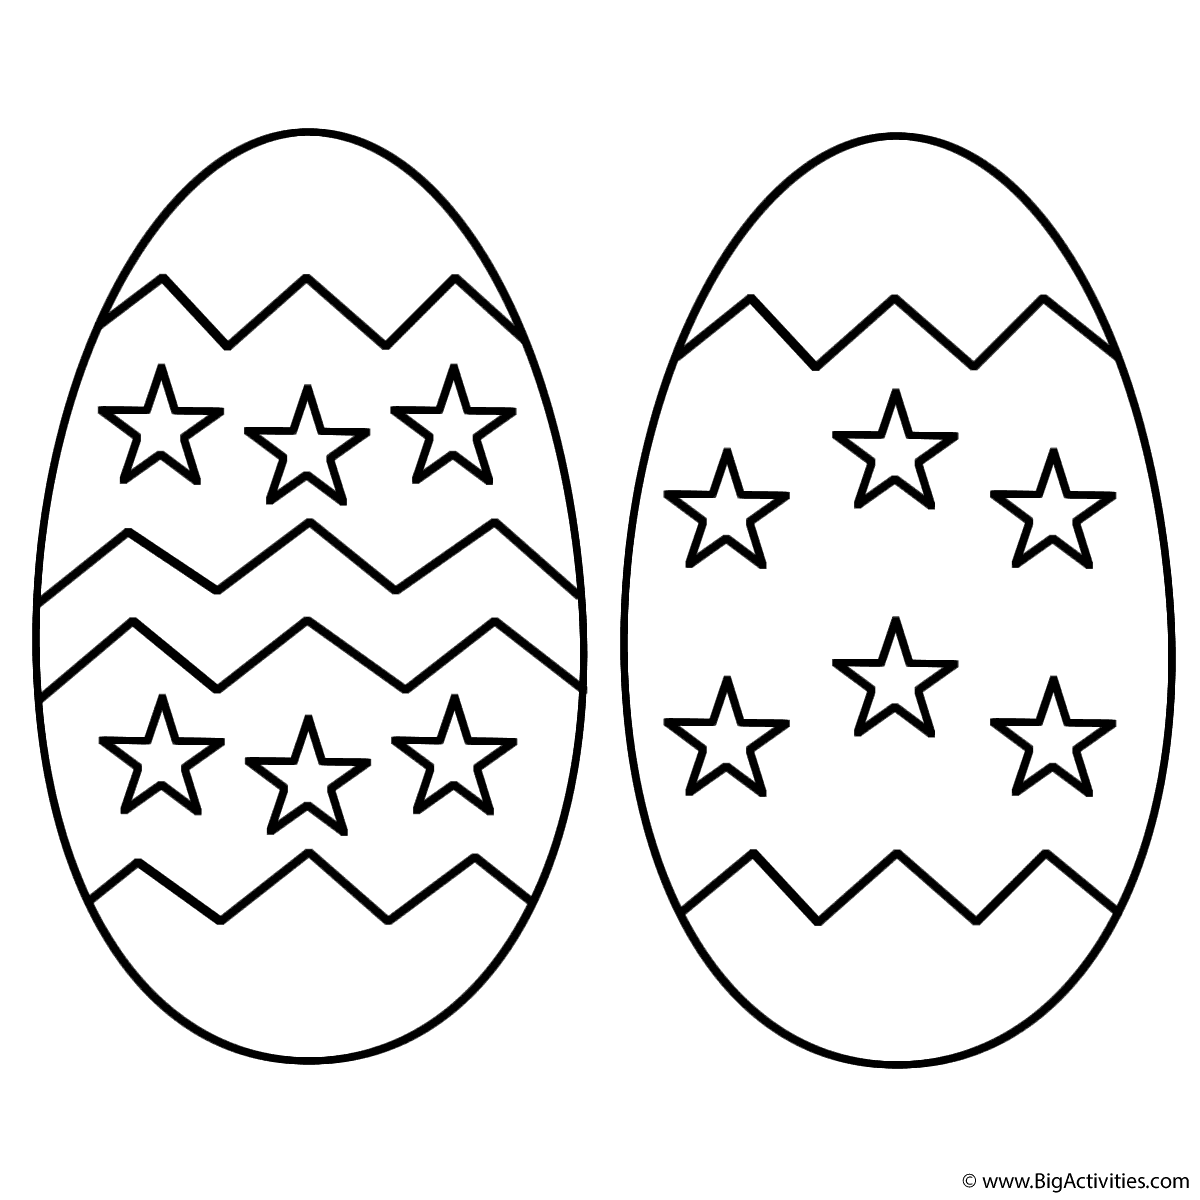 Two Easter Eggs With Stars